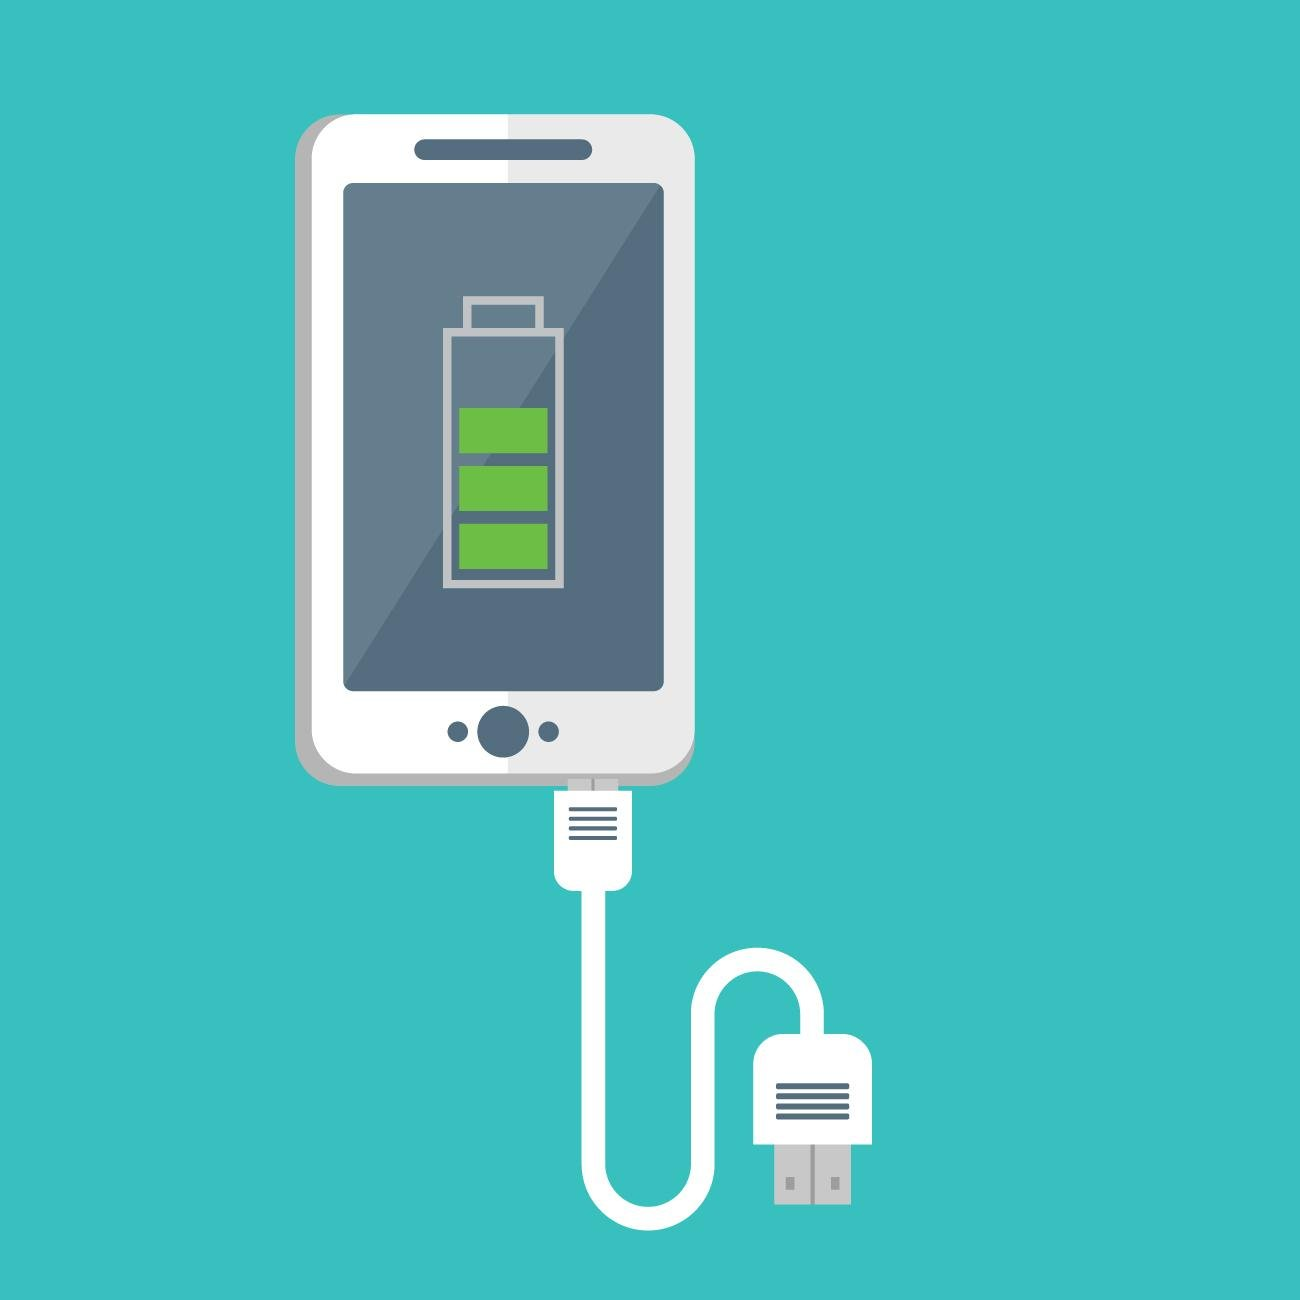 Top 10 Ways To Improve the Battery Life on Your Phone